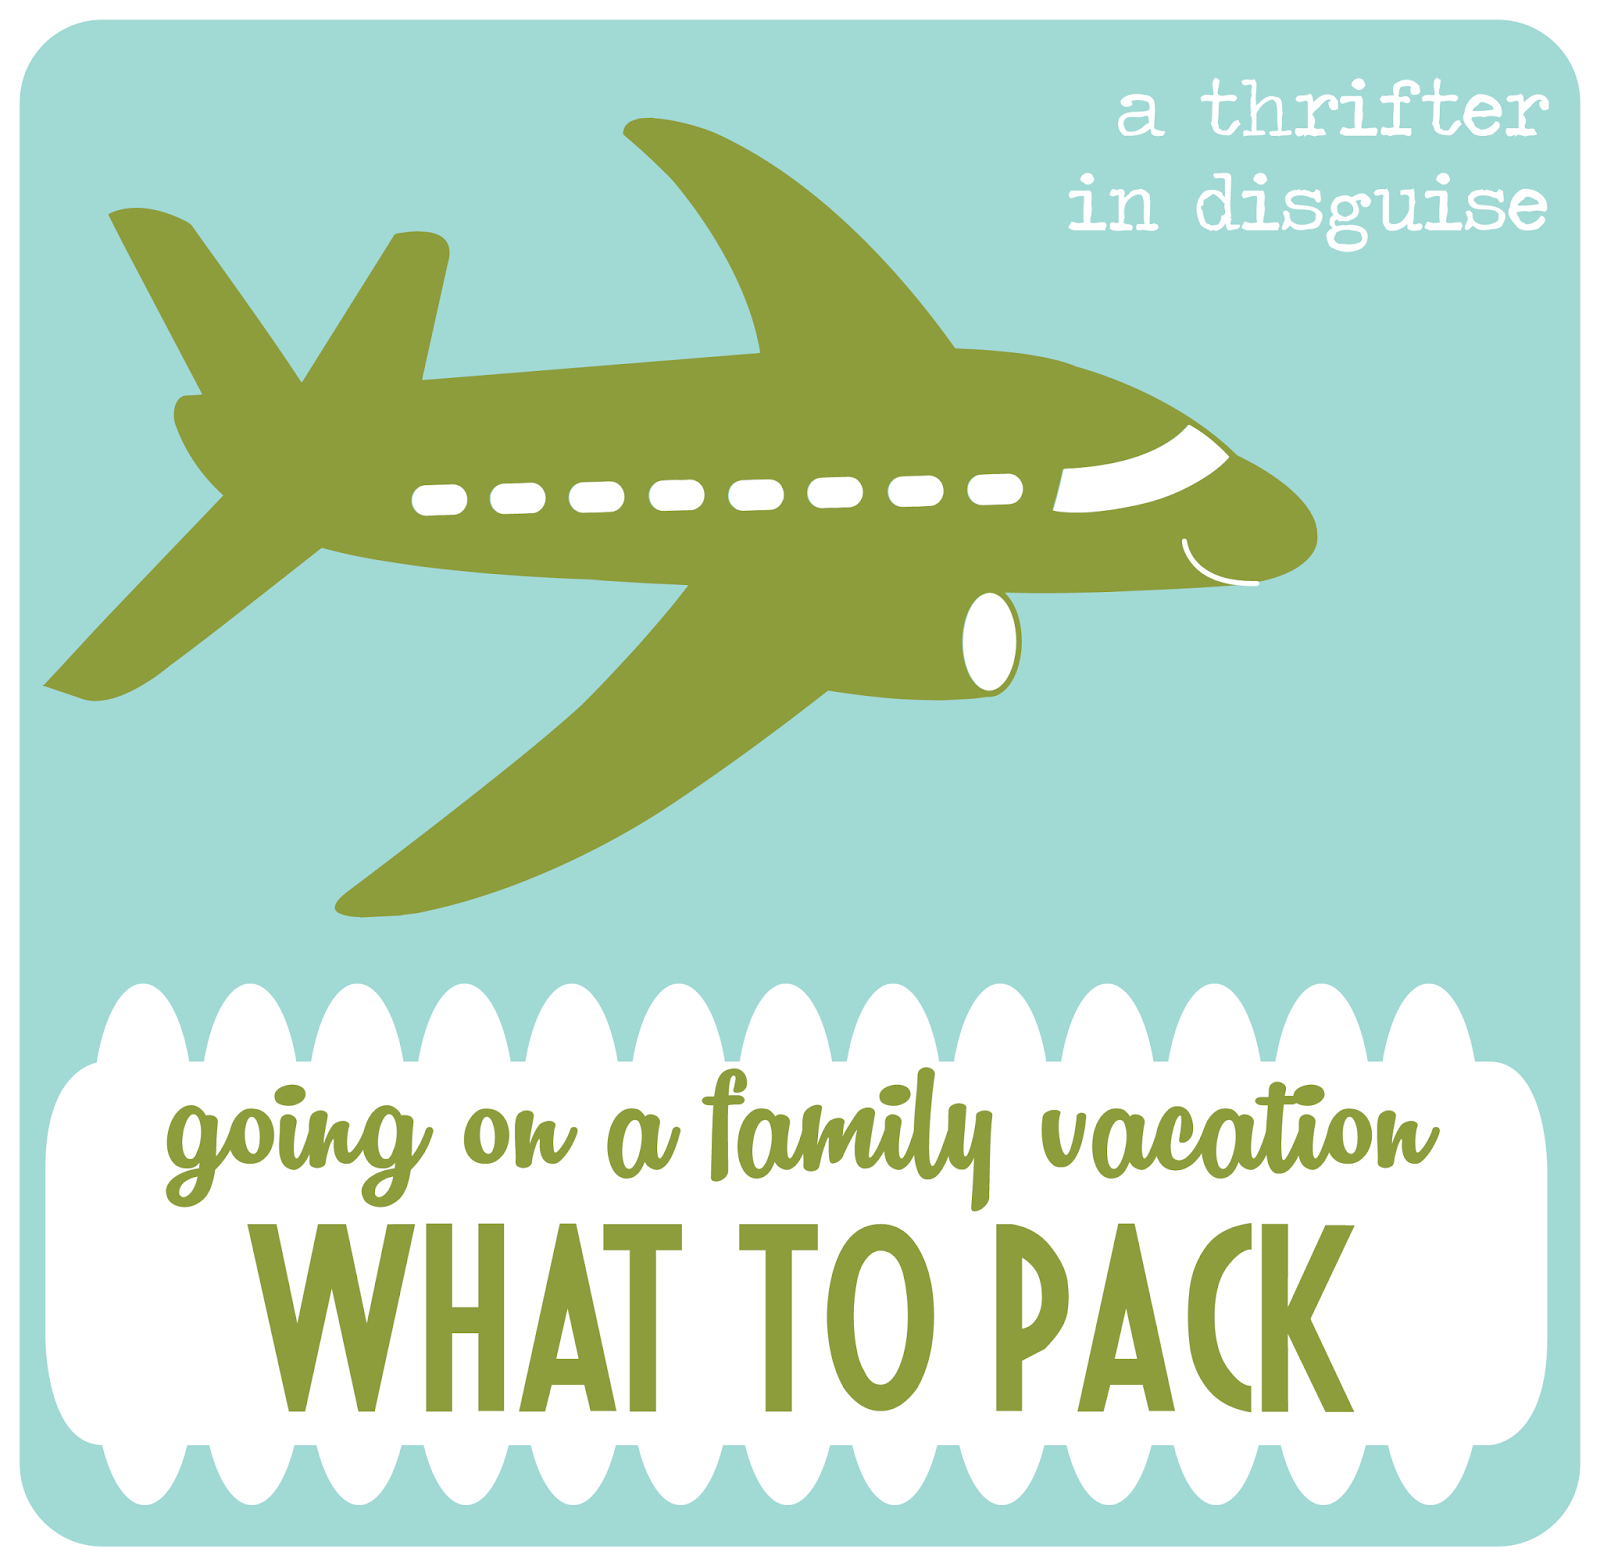 http://www.thrifterindisguise.com/2014/03/take-trip-tuesday-what-to-pack-for.html